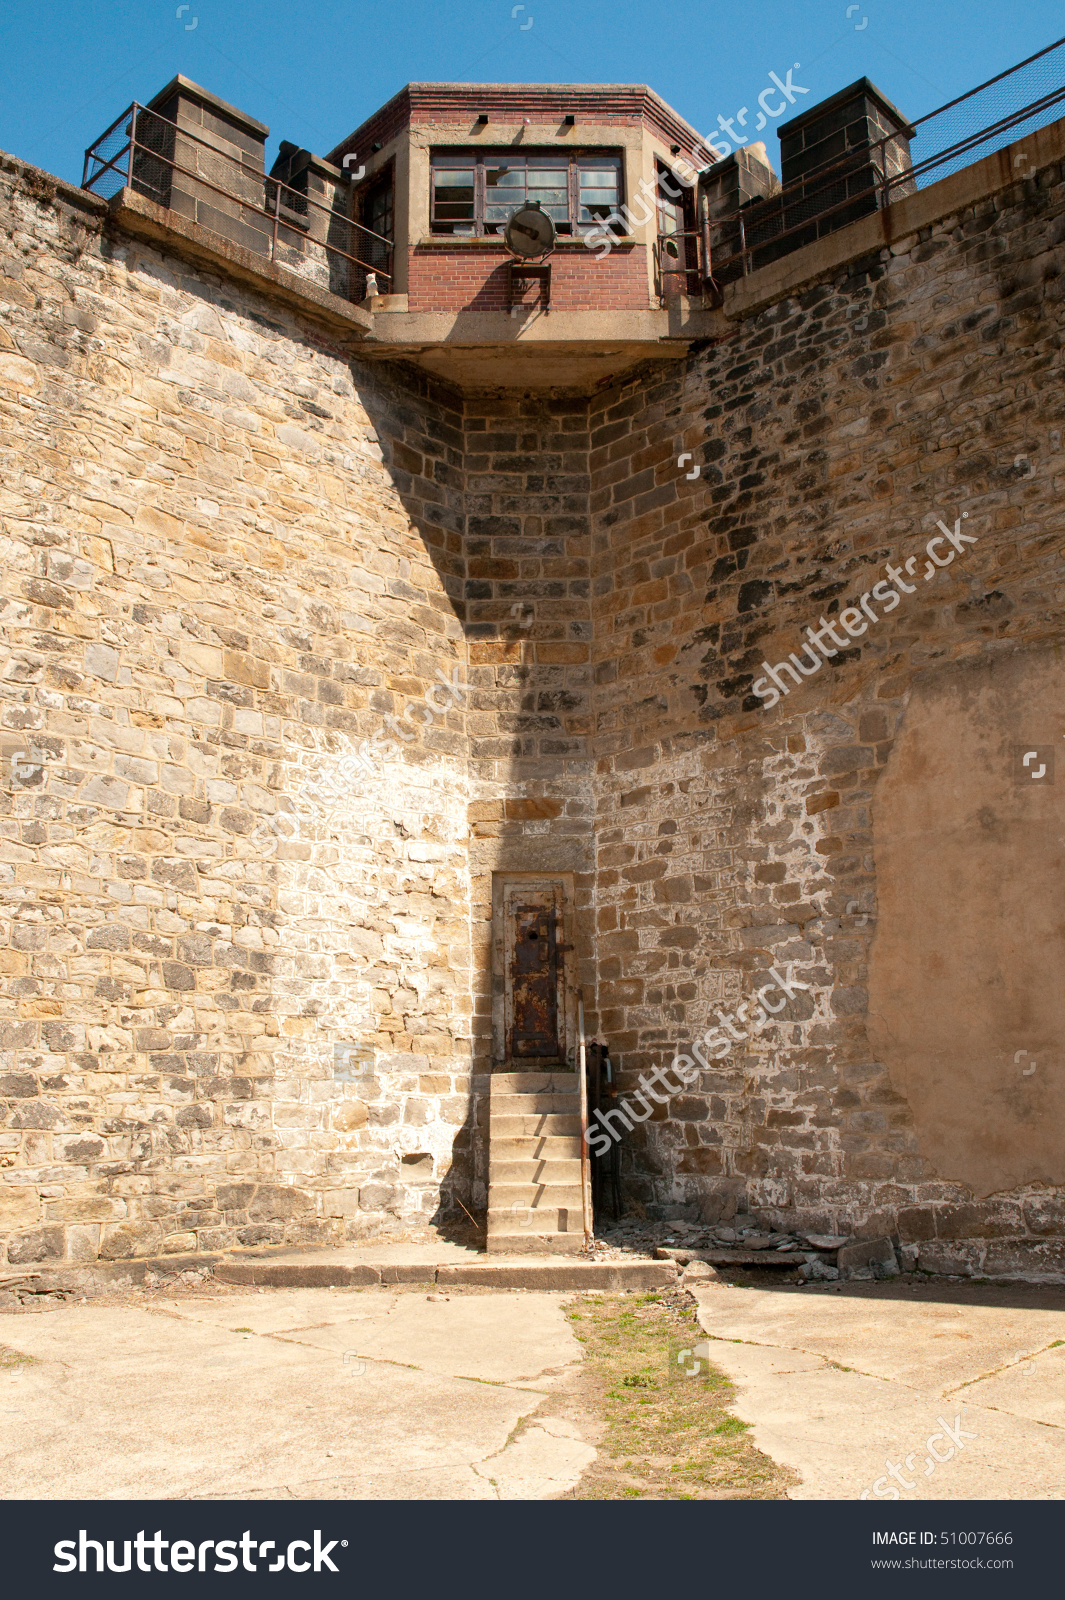 Eastern State Penitentiary Walls And Guard Tower Stock Photo.